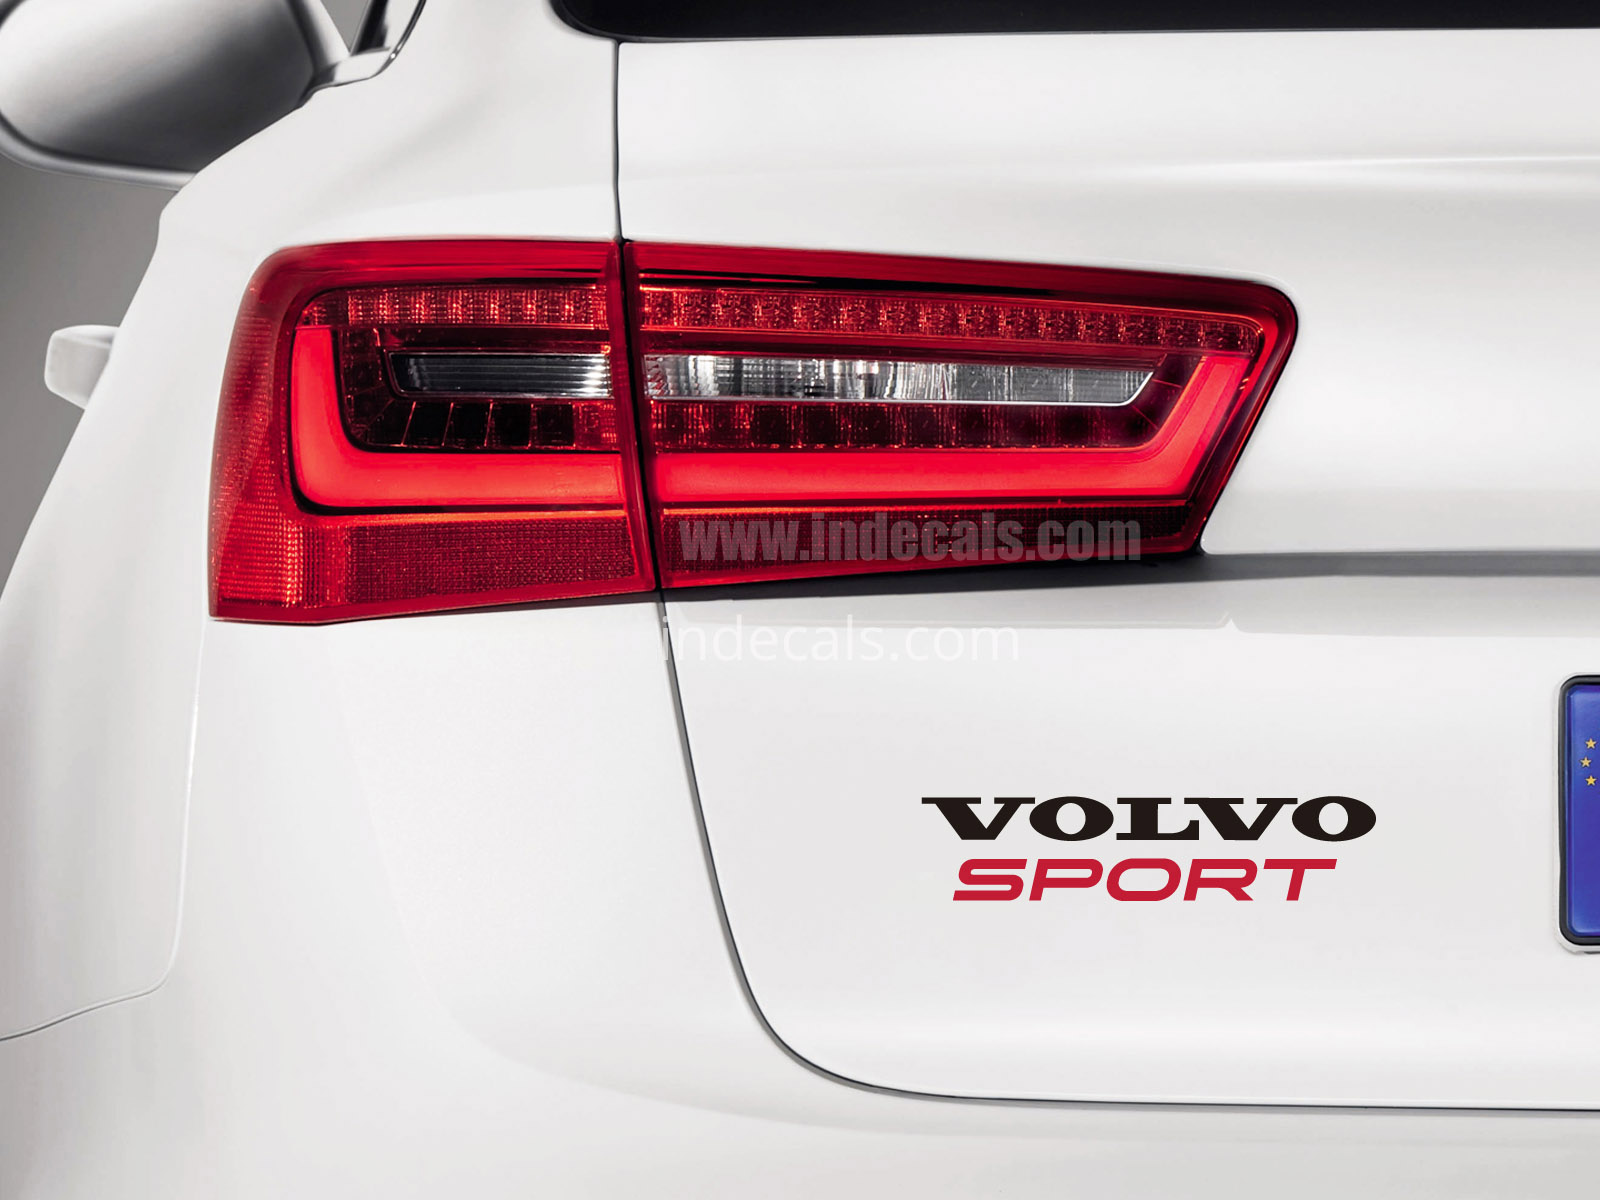 1 x Volvo Sports Sticker for Trunk - Black & Red